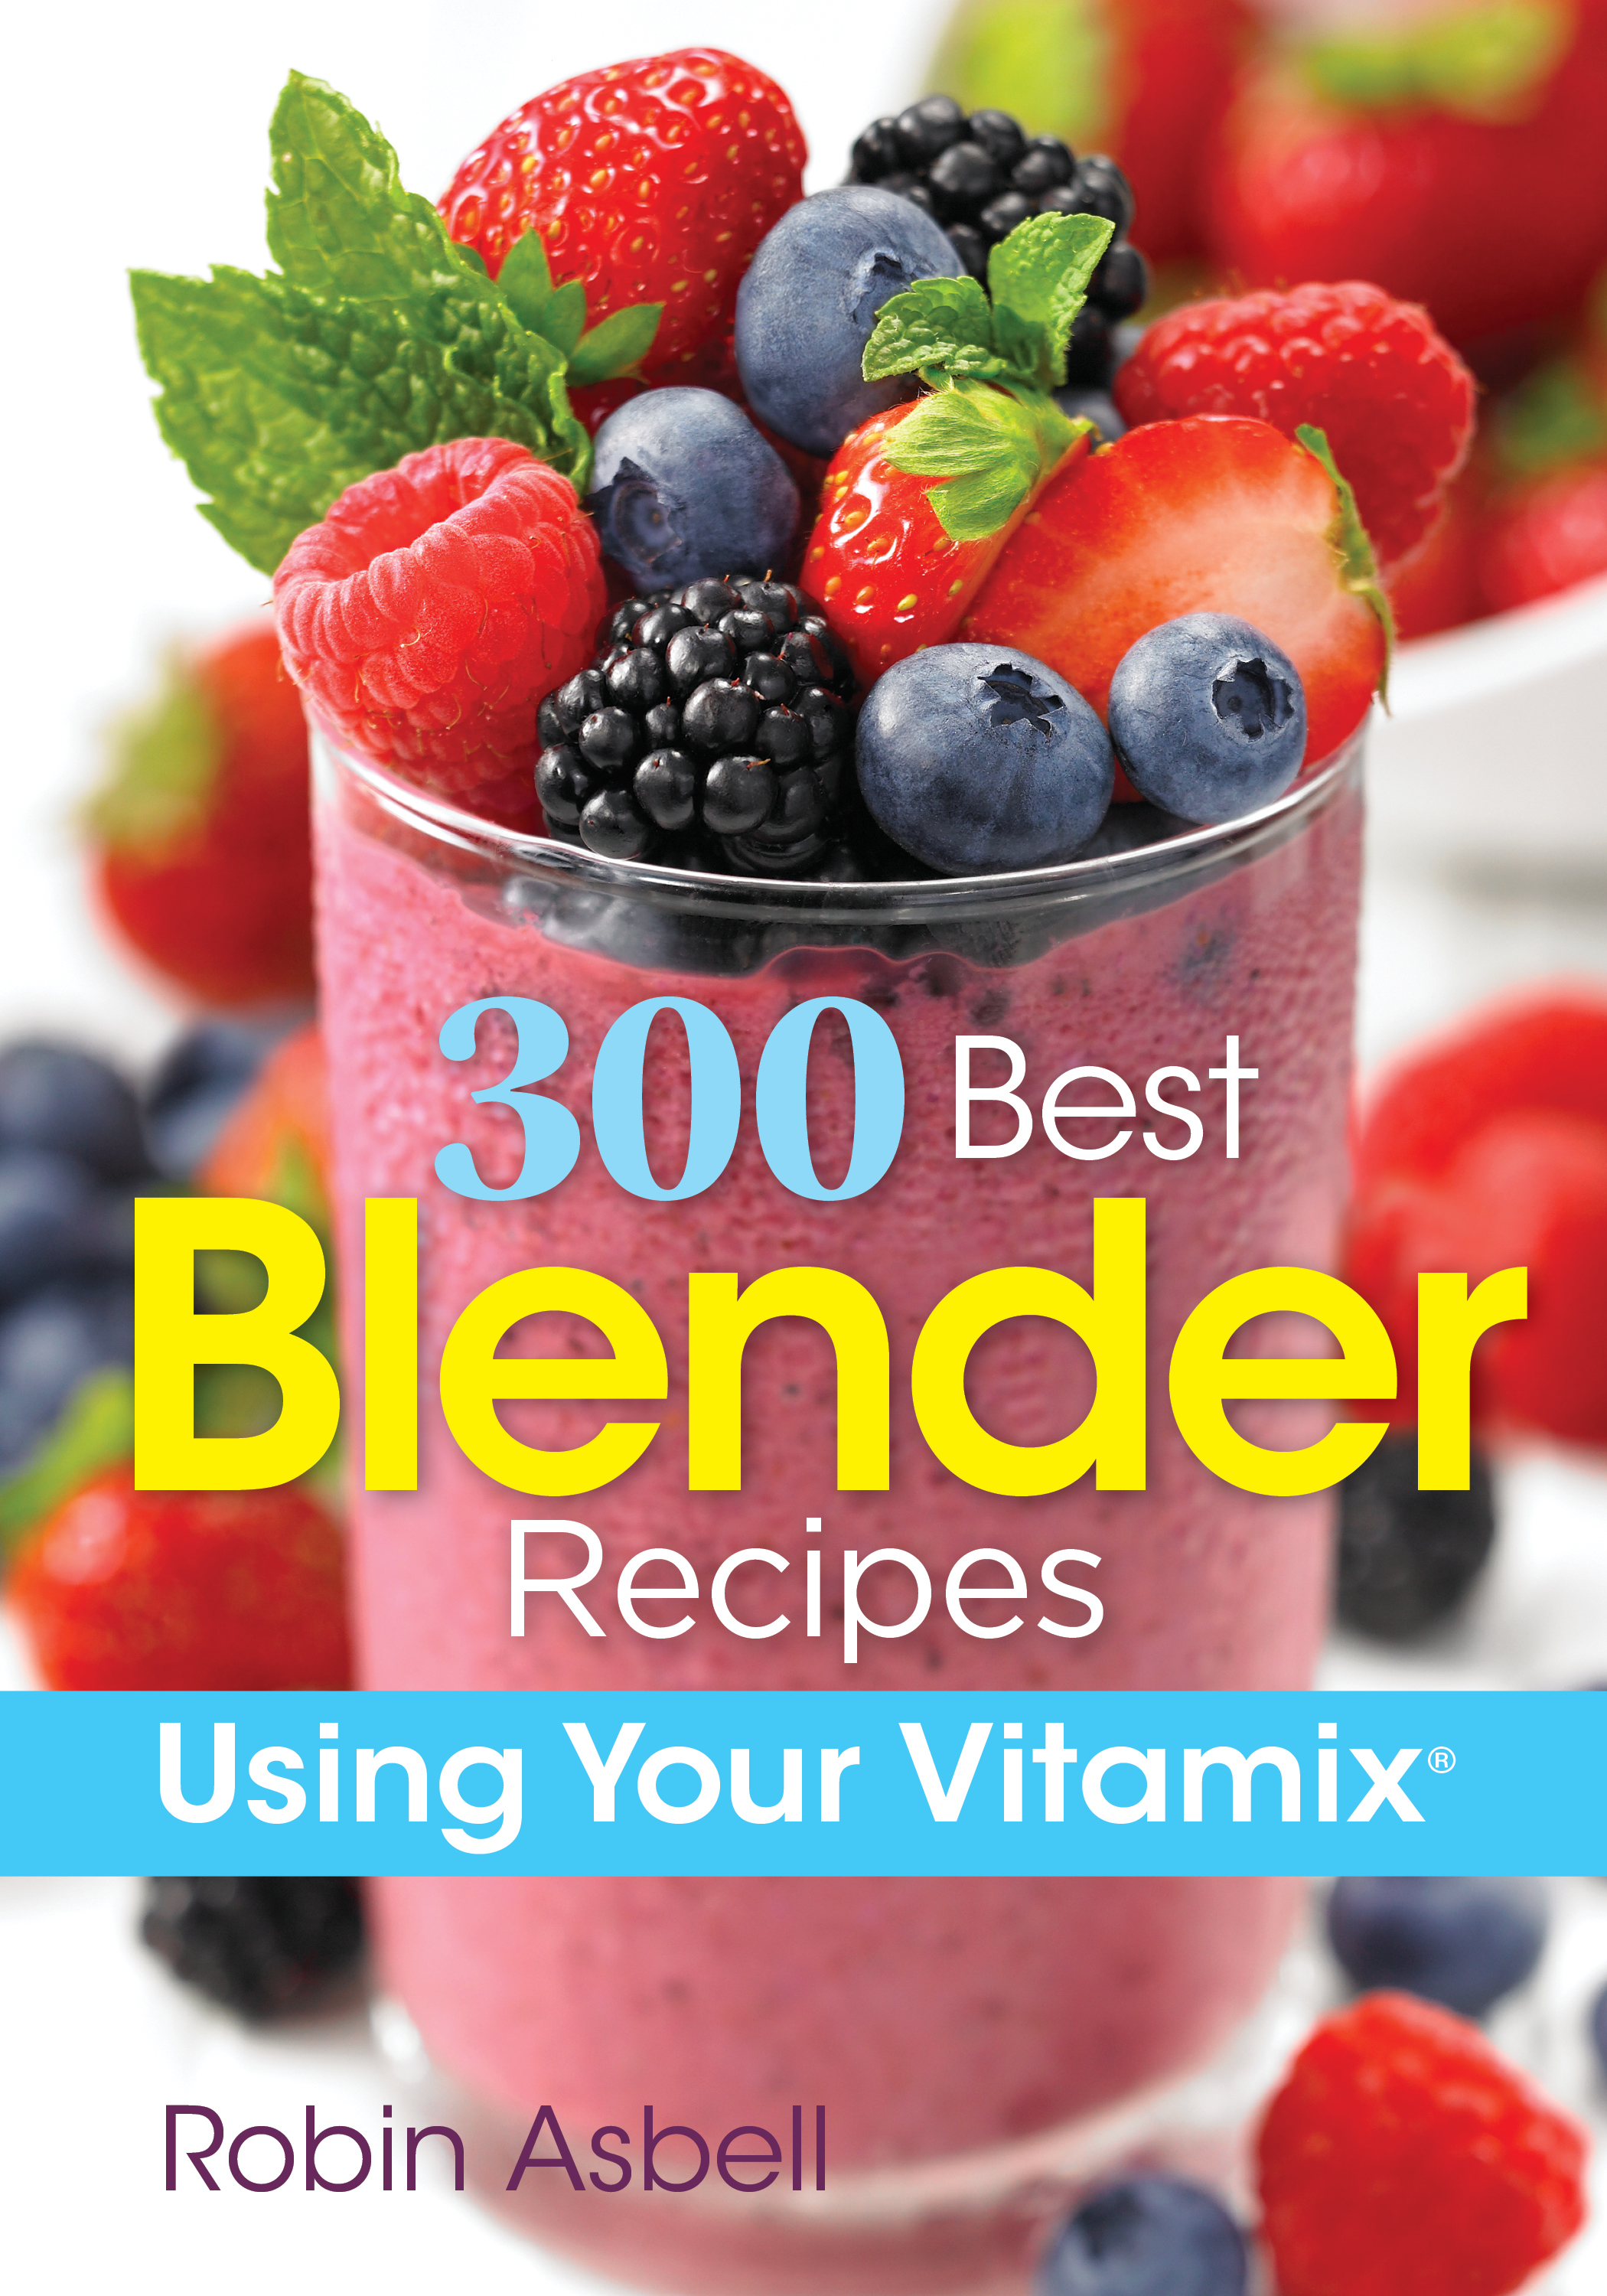 300 Best Blender Recipes Vitamix